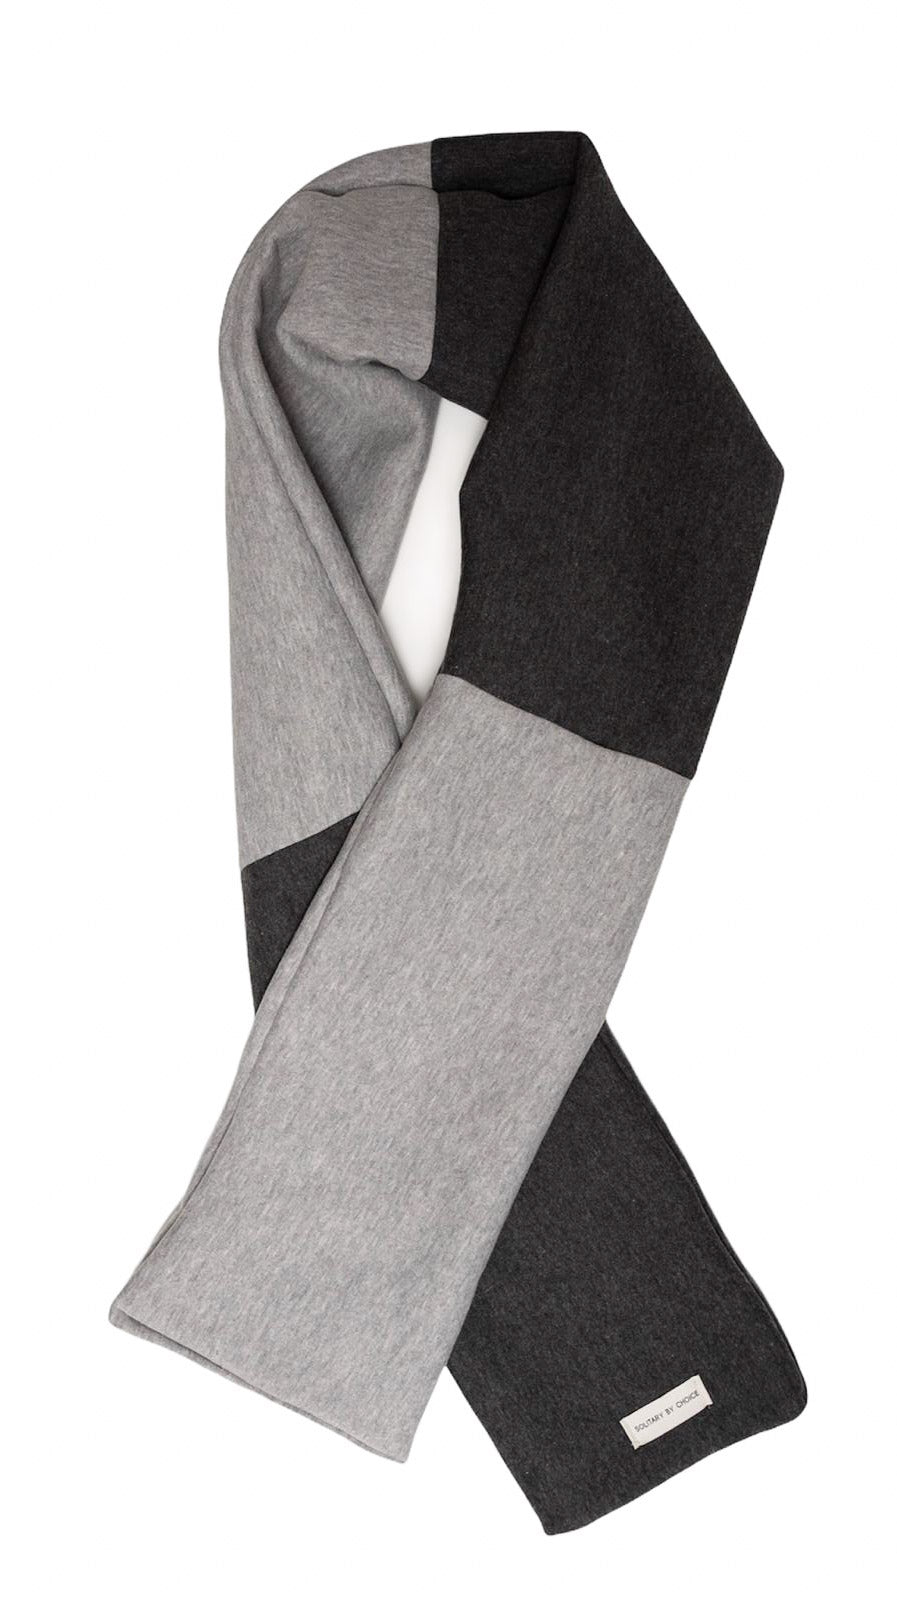 SOLITARY BY CHOICE TWO TONED GREY SCARF